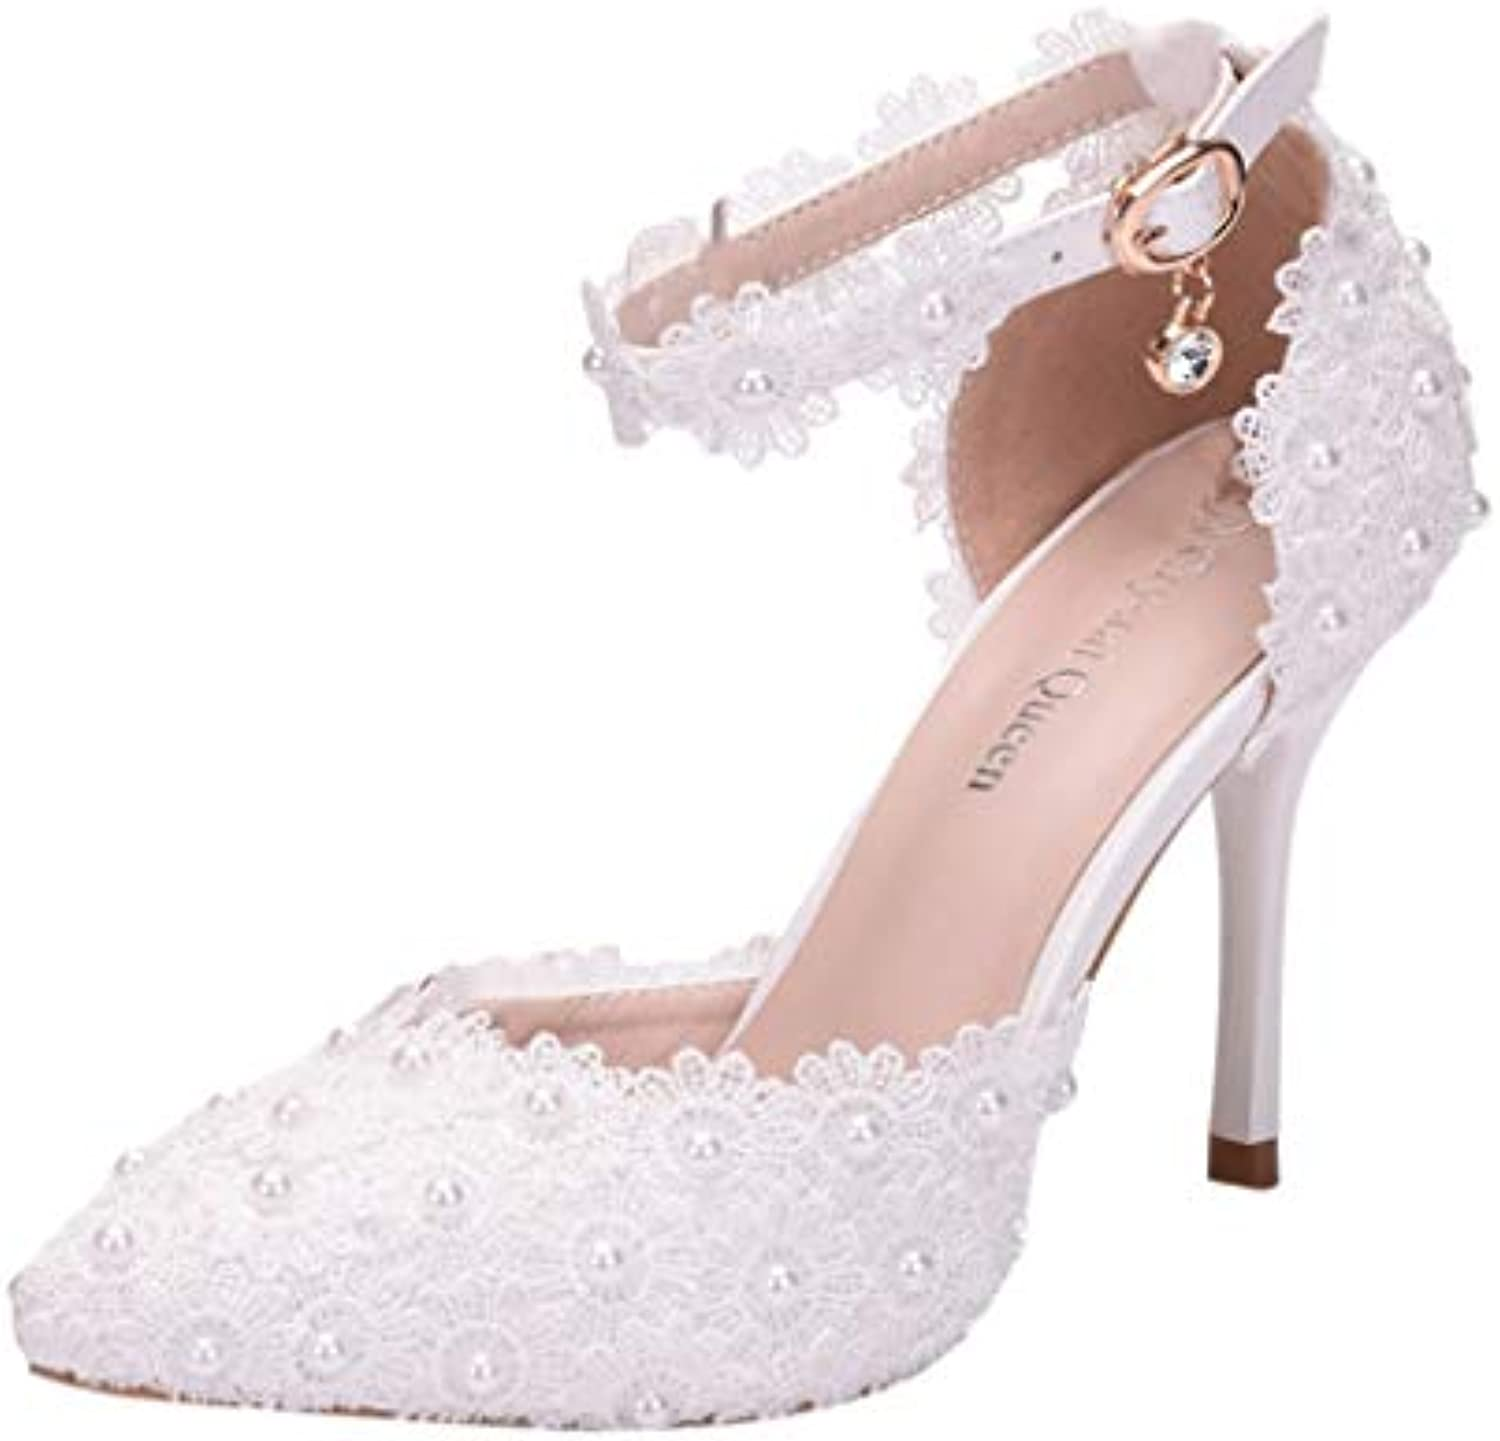 Women Rhinestone High Heels, Lady Sexy Wedding Pointed Toe Thin Sandals shoes Ankle Straps Sandals